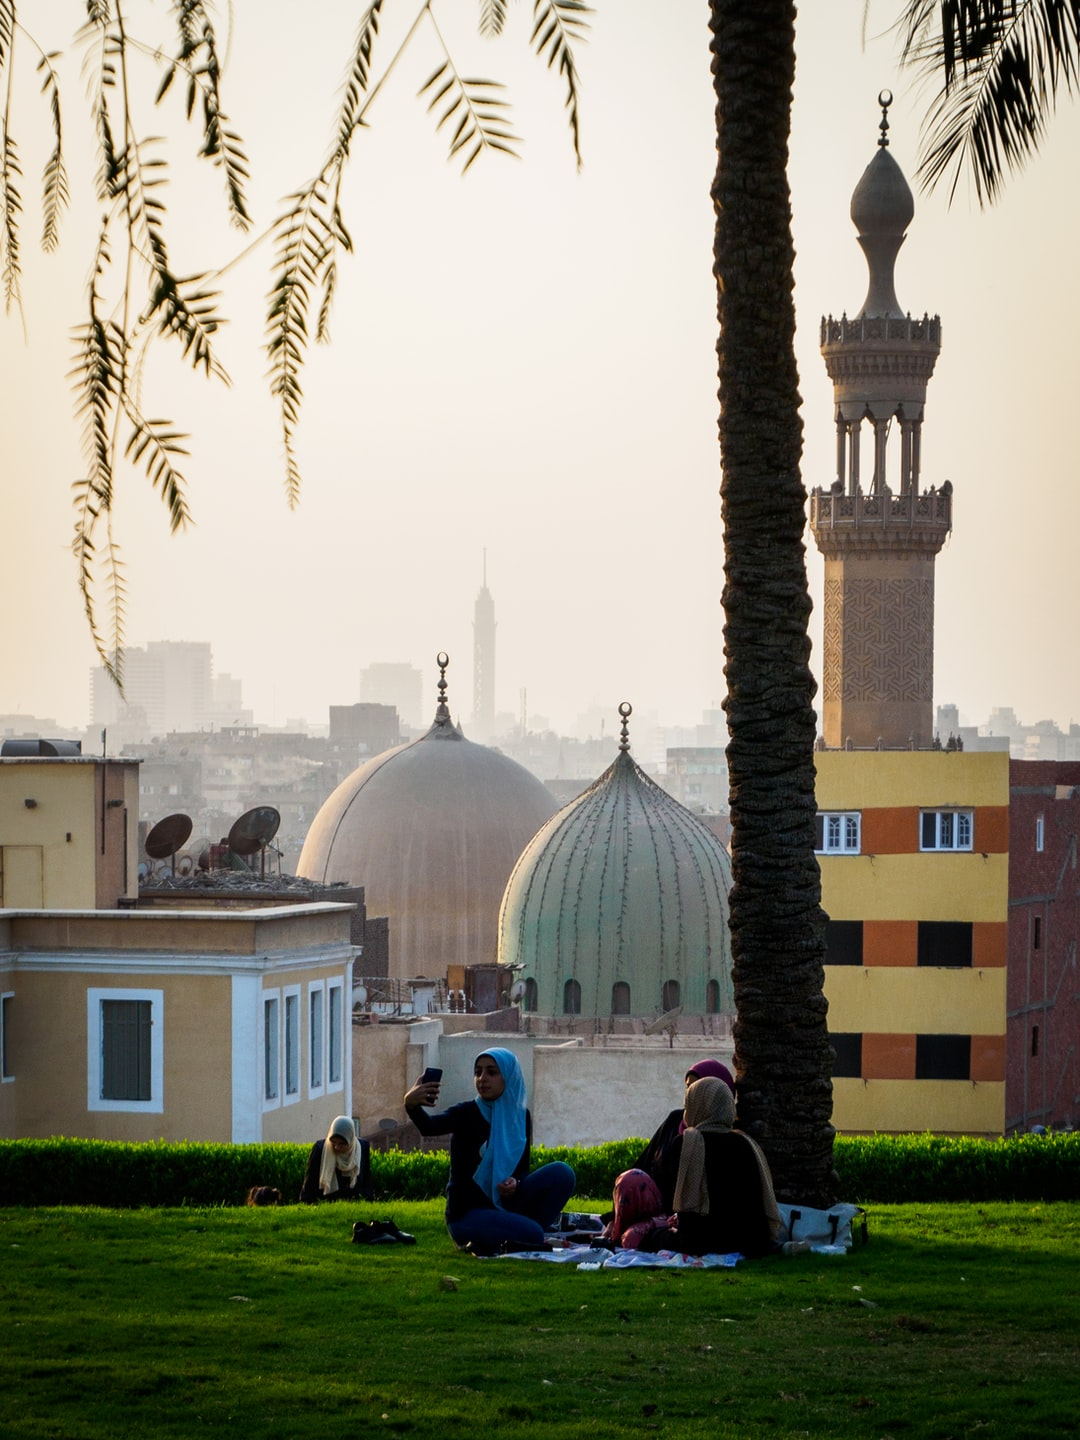 Yalla selfie-time! When it's Friday in Cairo, it's the one day a week reserved for the family. So from everywhere families are going f.e. to park, like Al Azhar Park, Cairo to have a picknick and just have some quality time with friends and family.